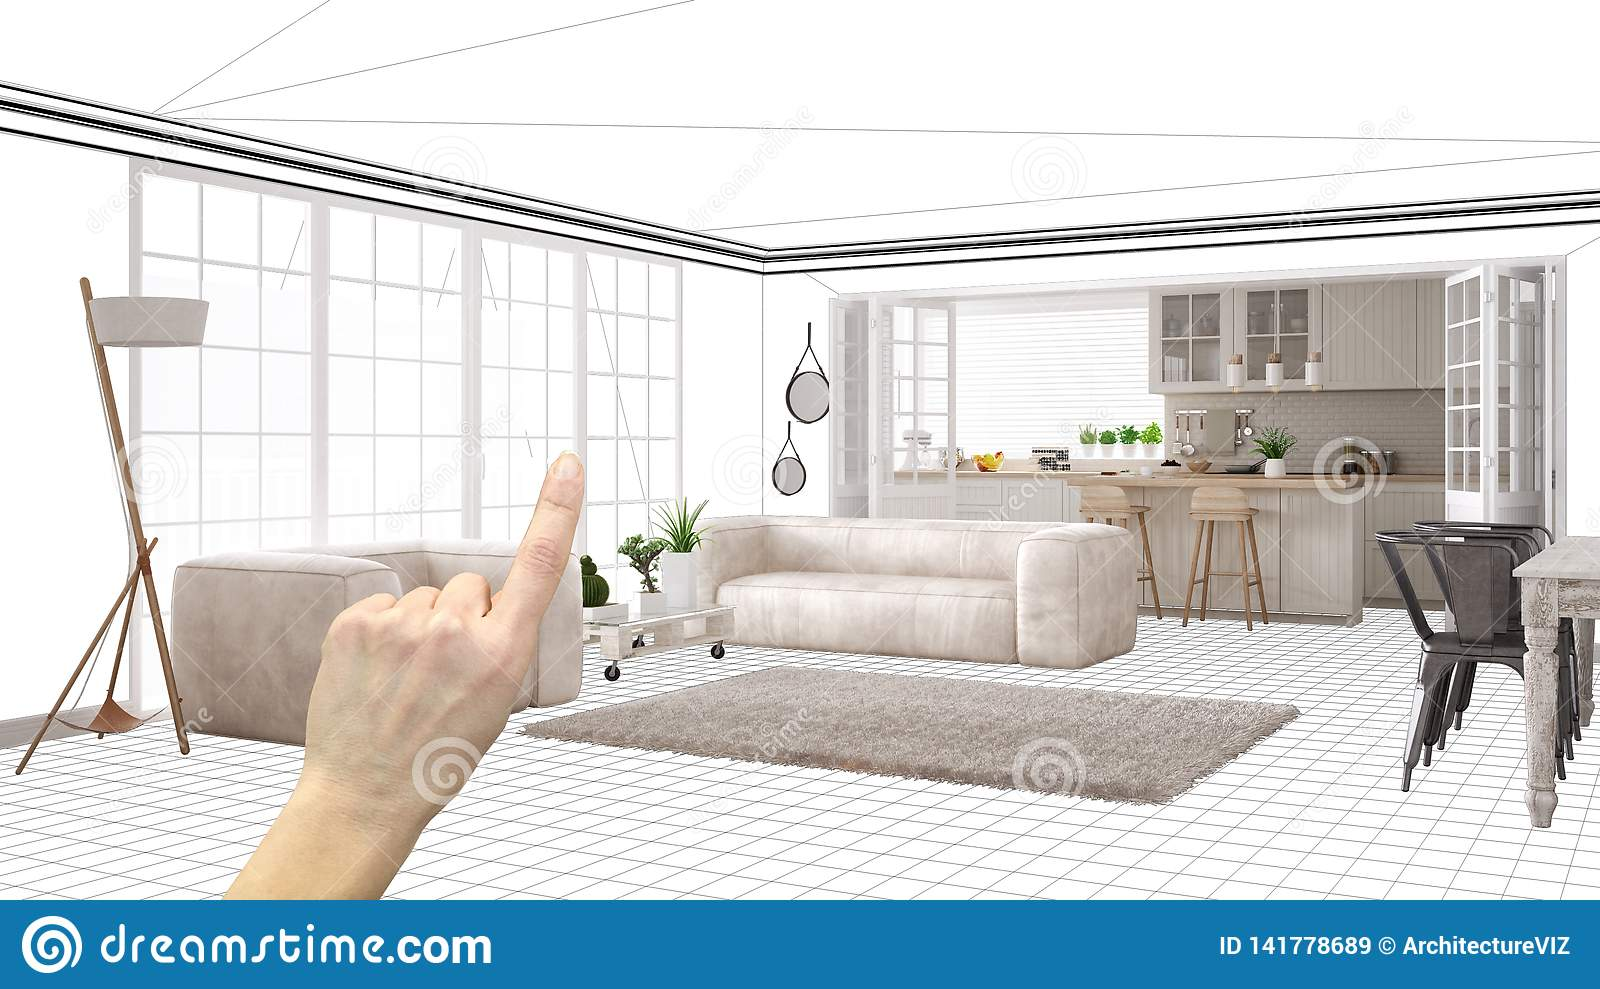 Unfinished Project Under Construction Draft Concept Interior Design Sketch Hand Pointing Real Scandinavian Living Room With Stock Image Image Of Pointing Concept 141778689